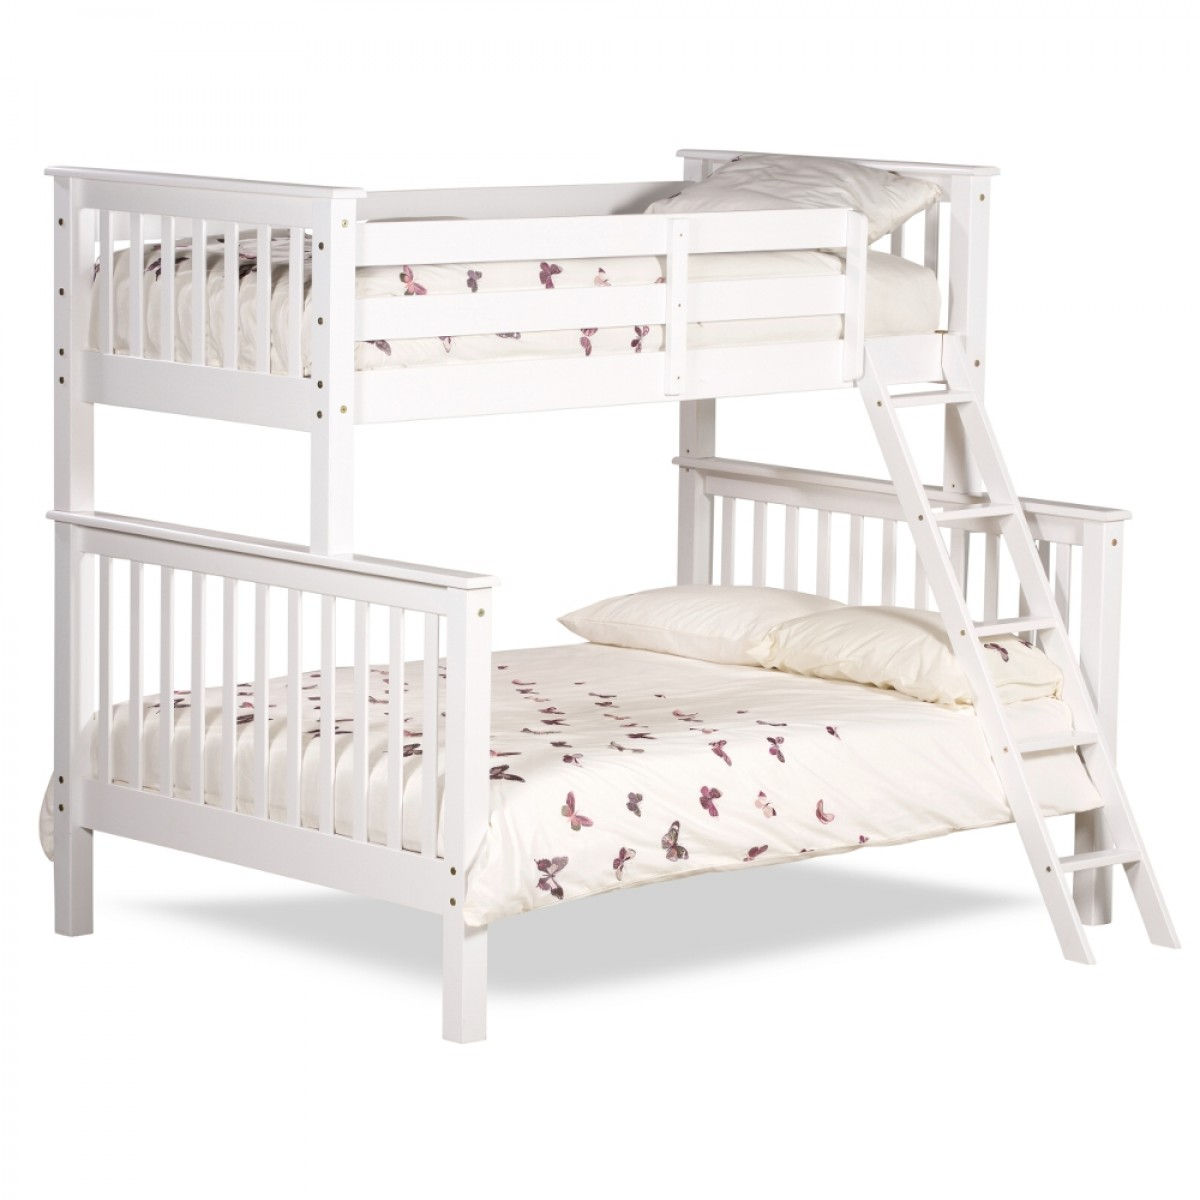 chiltern white wooden triple sleeper bunk bed. Black Bedroom Furniture Sets. Home Design Ideas